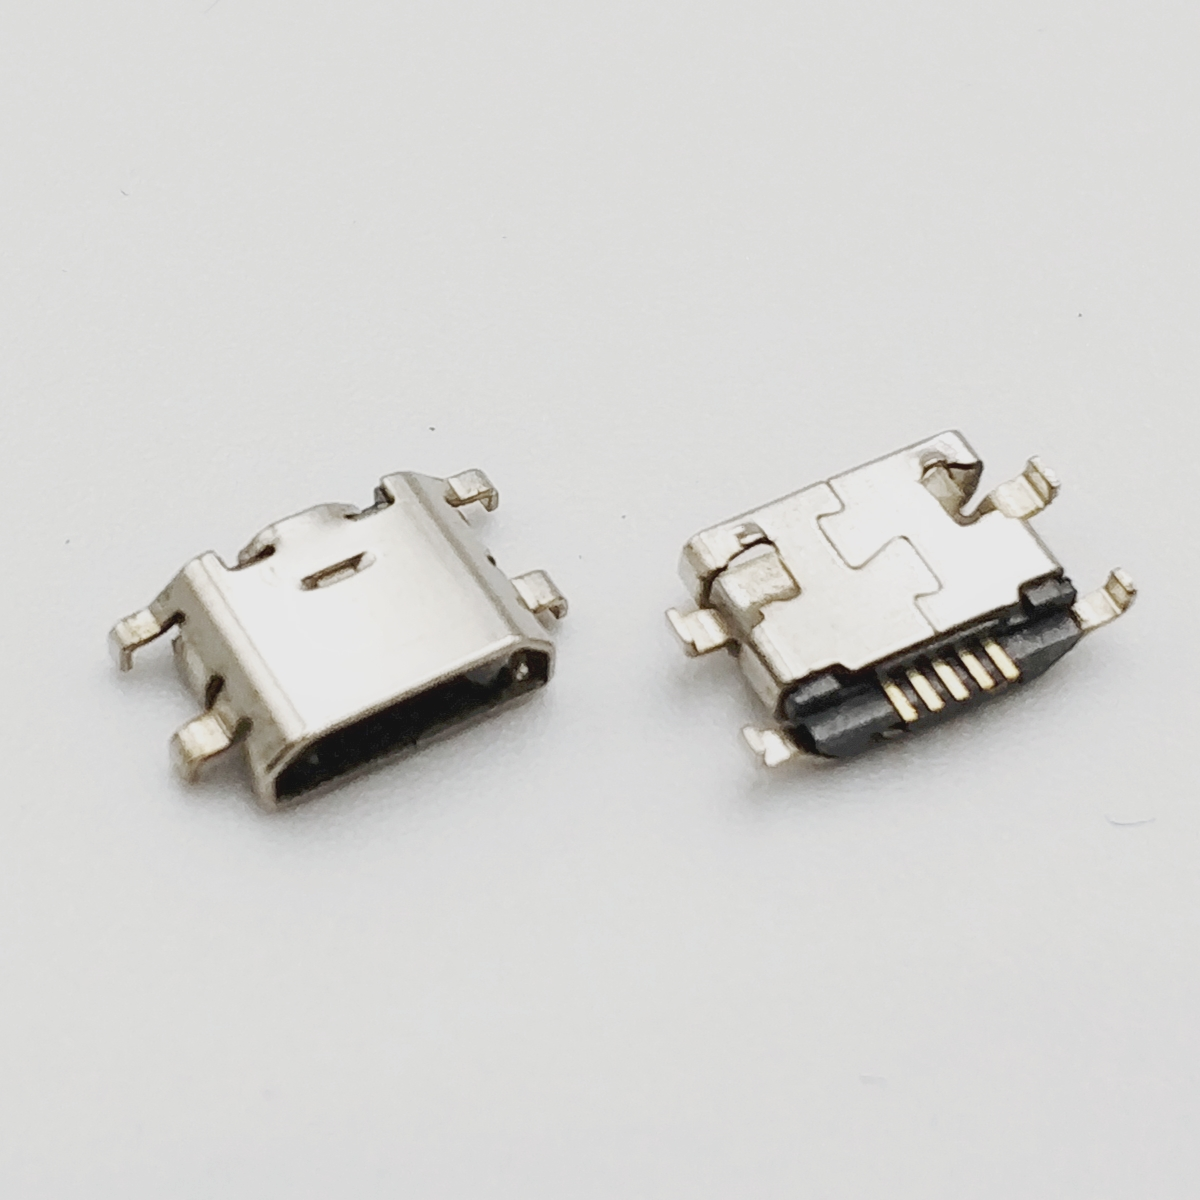 10pcs Micro USB 5pin Mini Connector Reverse Heavy Plate Mobile Charging Port For Xiaomi MAX MI MIX Mobile Phone Repair Parts